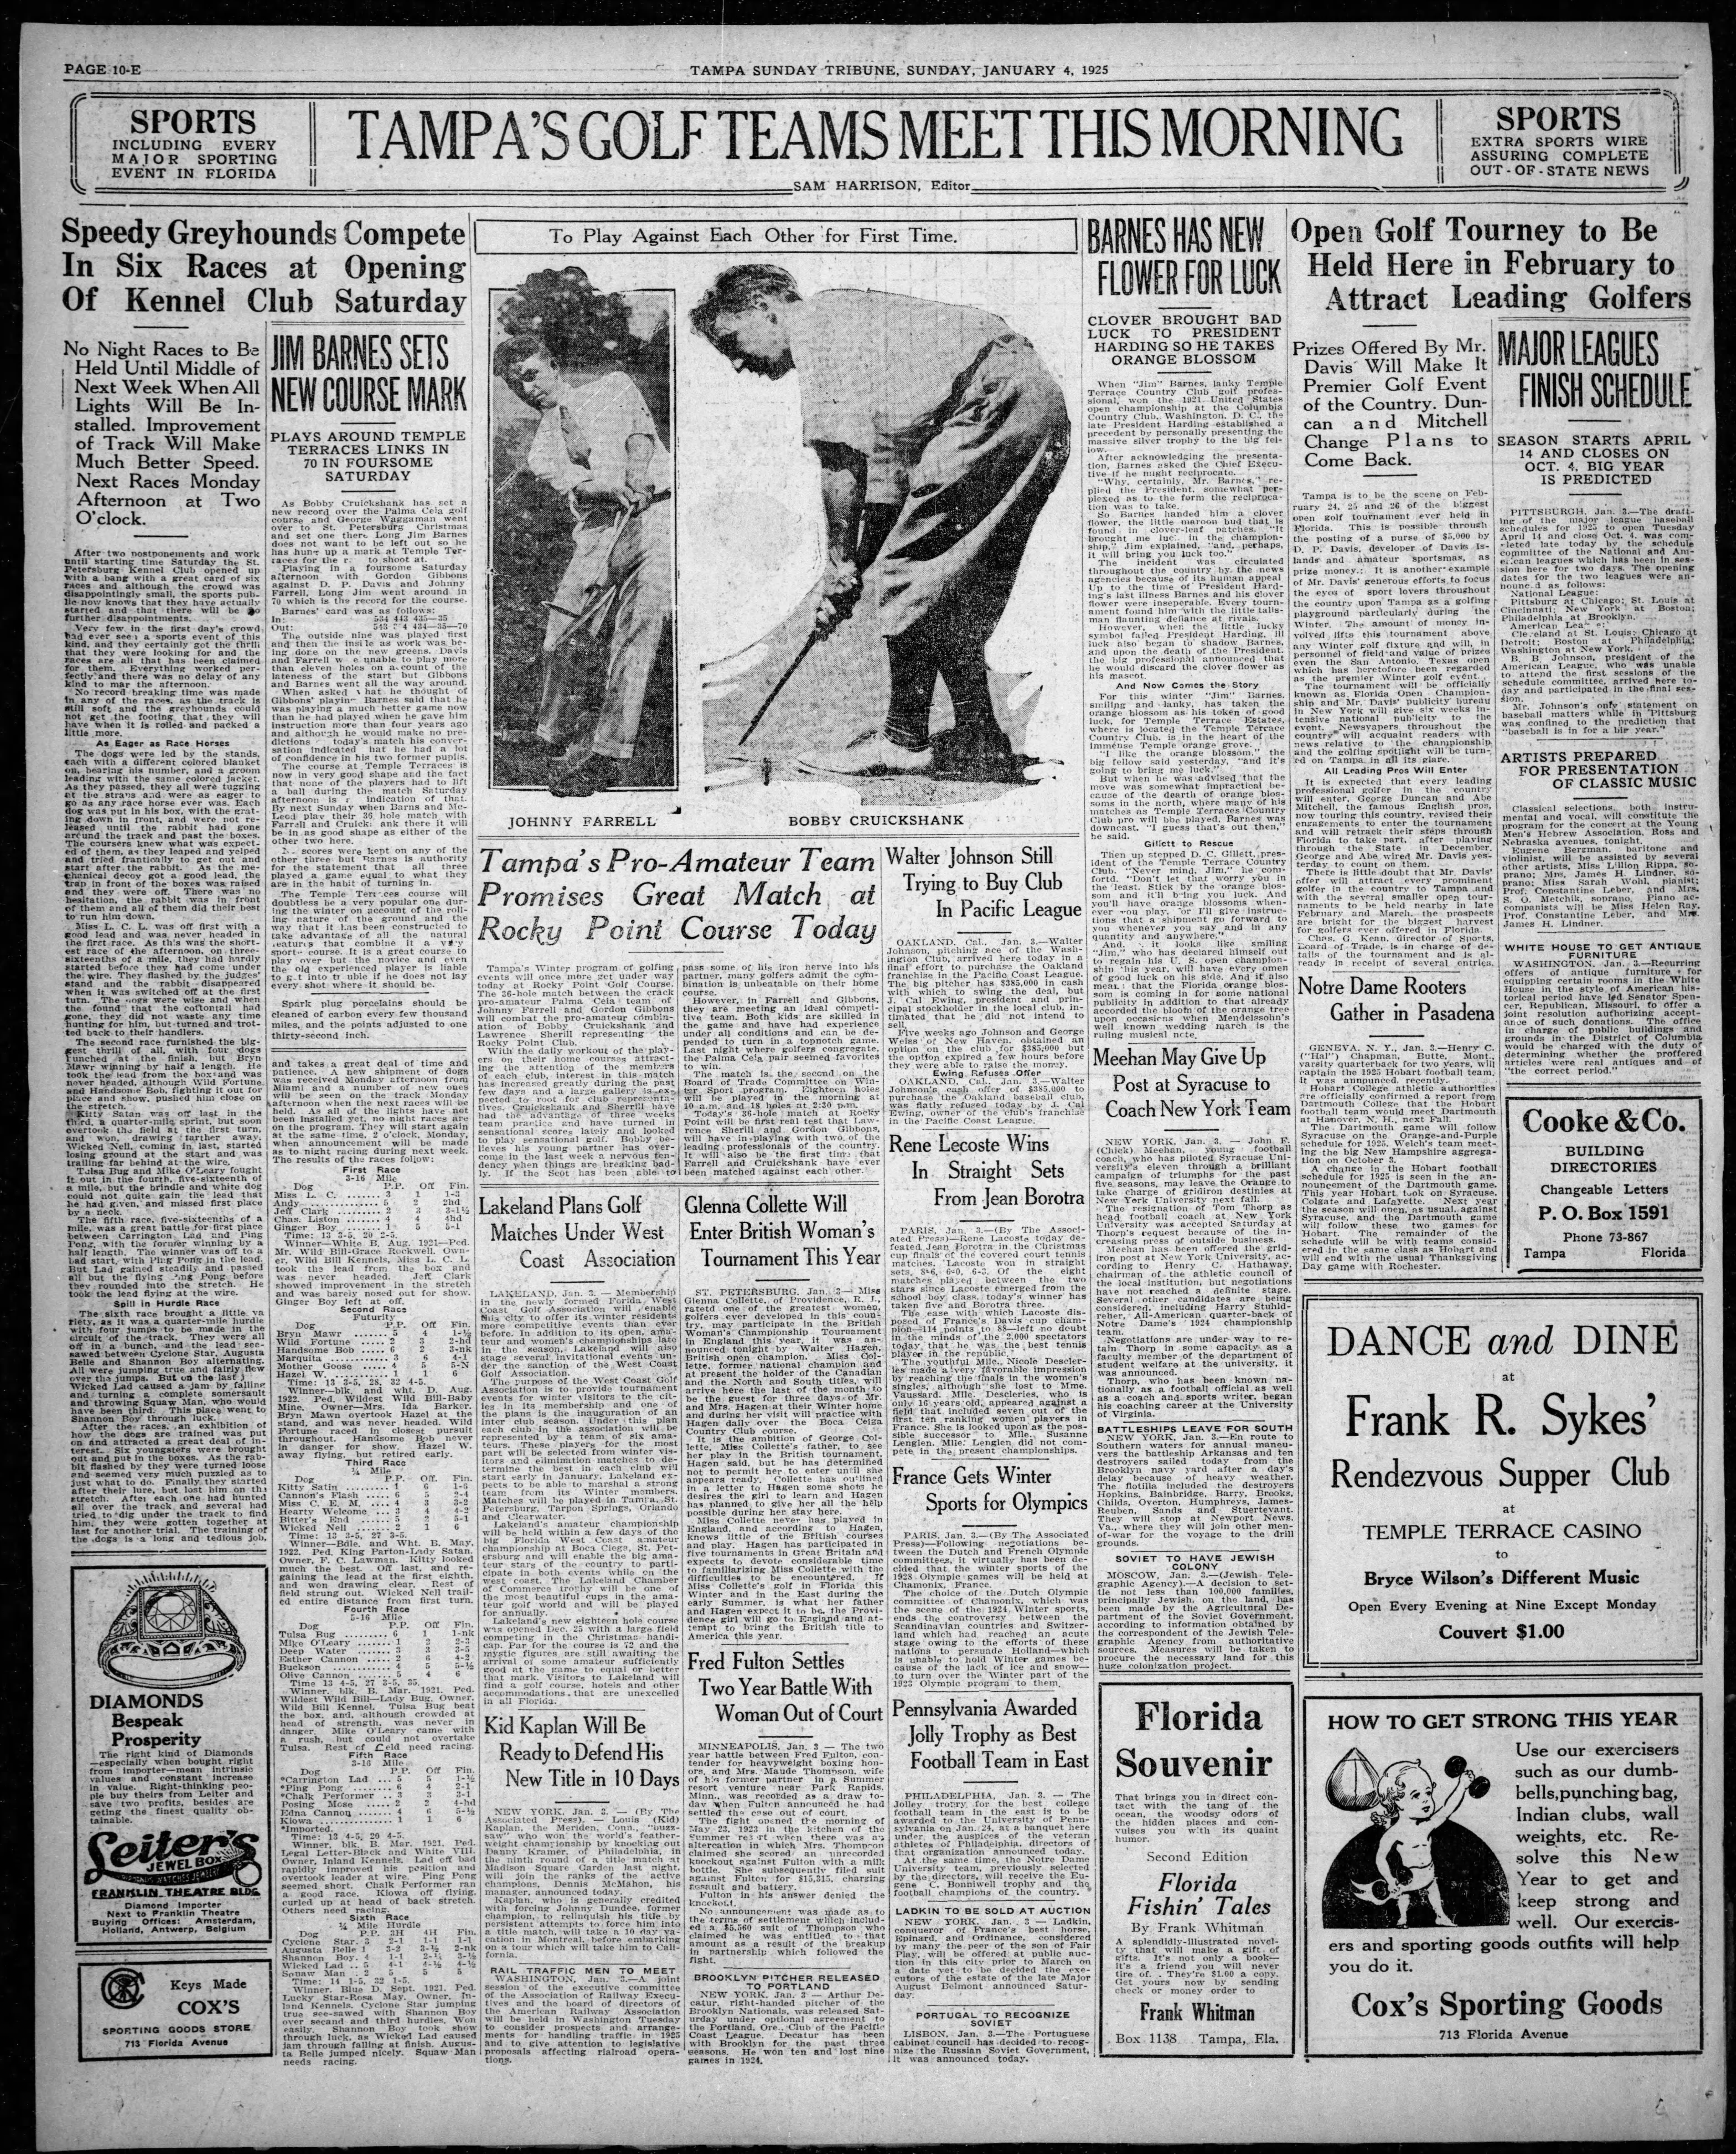 Tampa's Pro-Amateur Team Promises Great Match at Rocky Point Course Today - Jan 4, 1925 Tampa Tribune